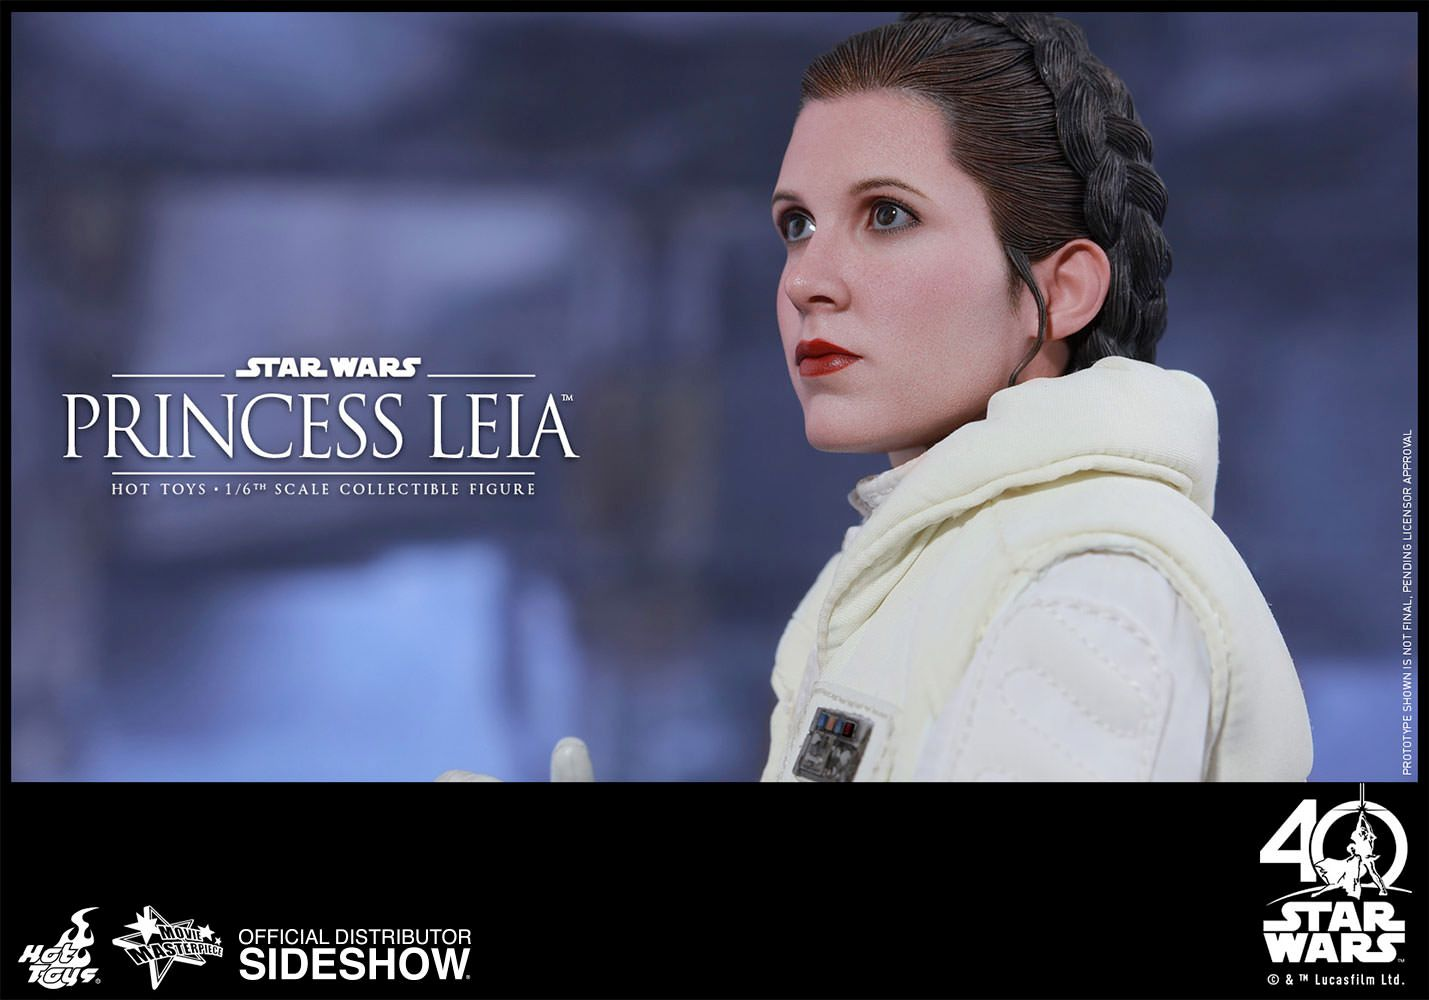 Hot-Toys-Princess-Leia-Collectible-Figure-Episode-V-12